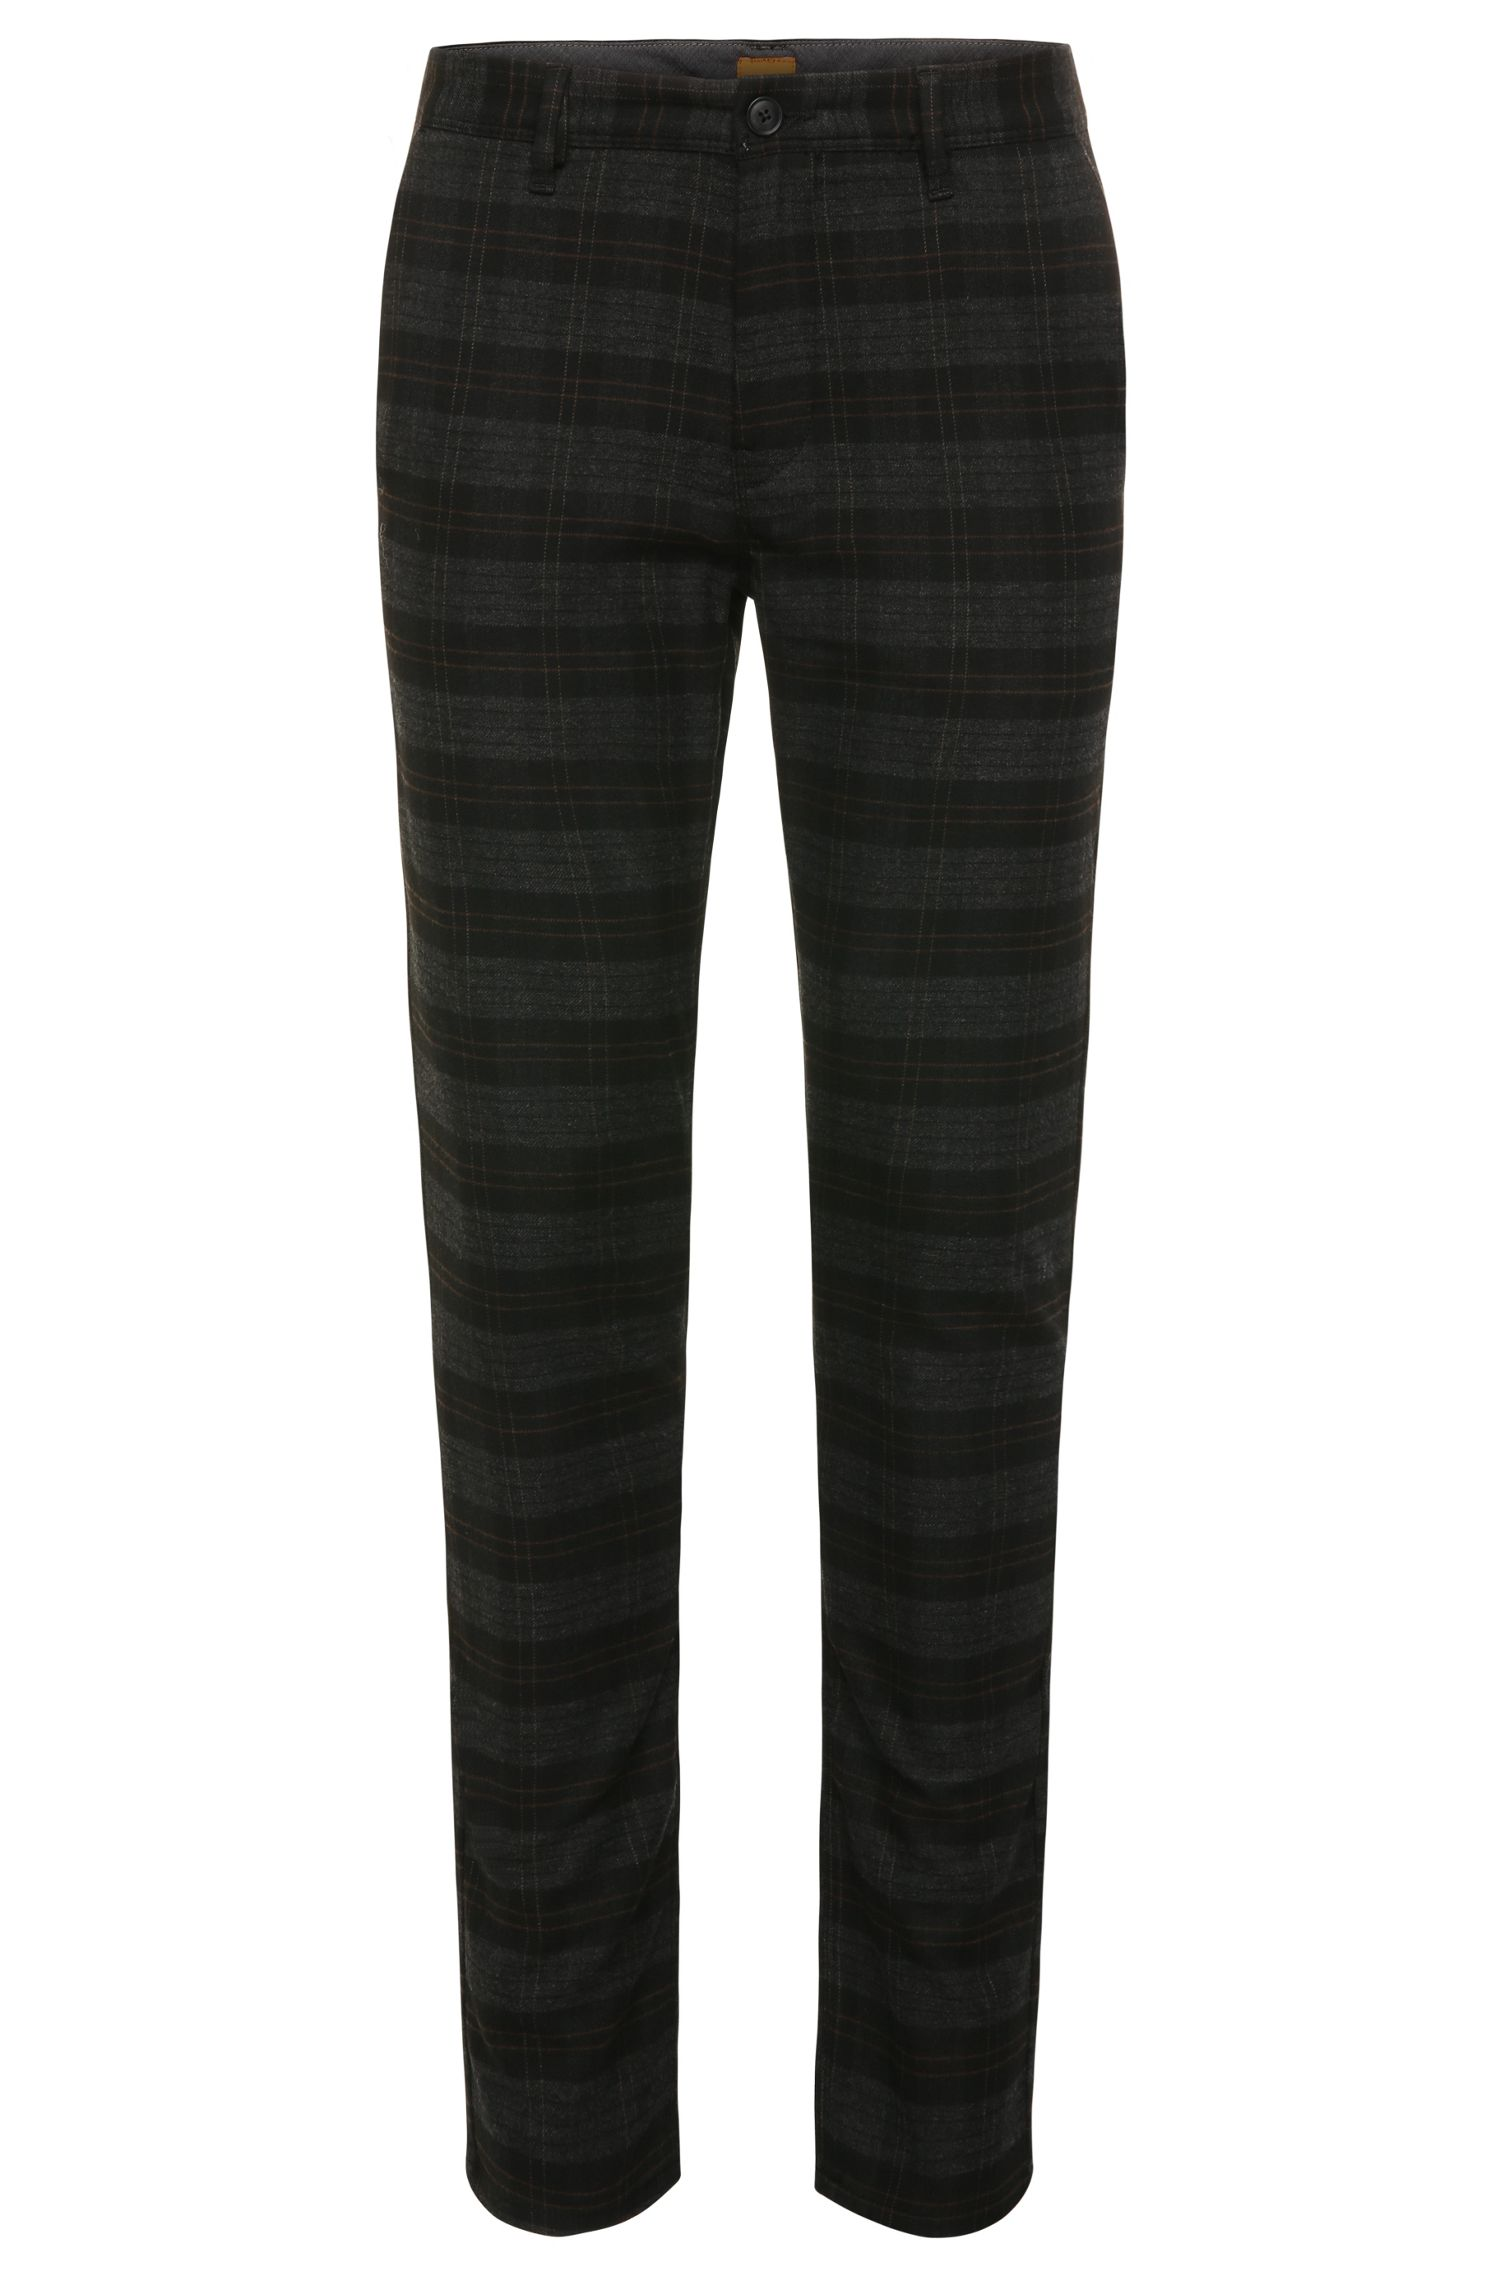 'Slender W' | Slim Fit, Stretch Tartan Trousers